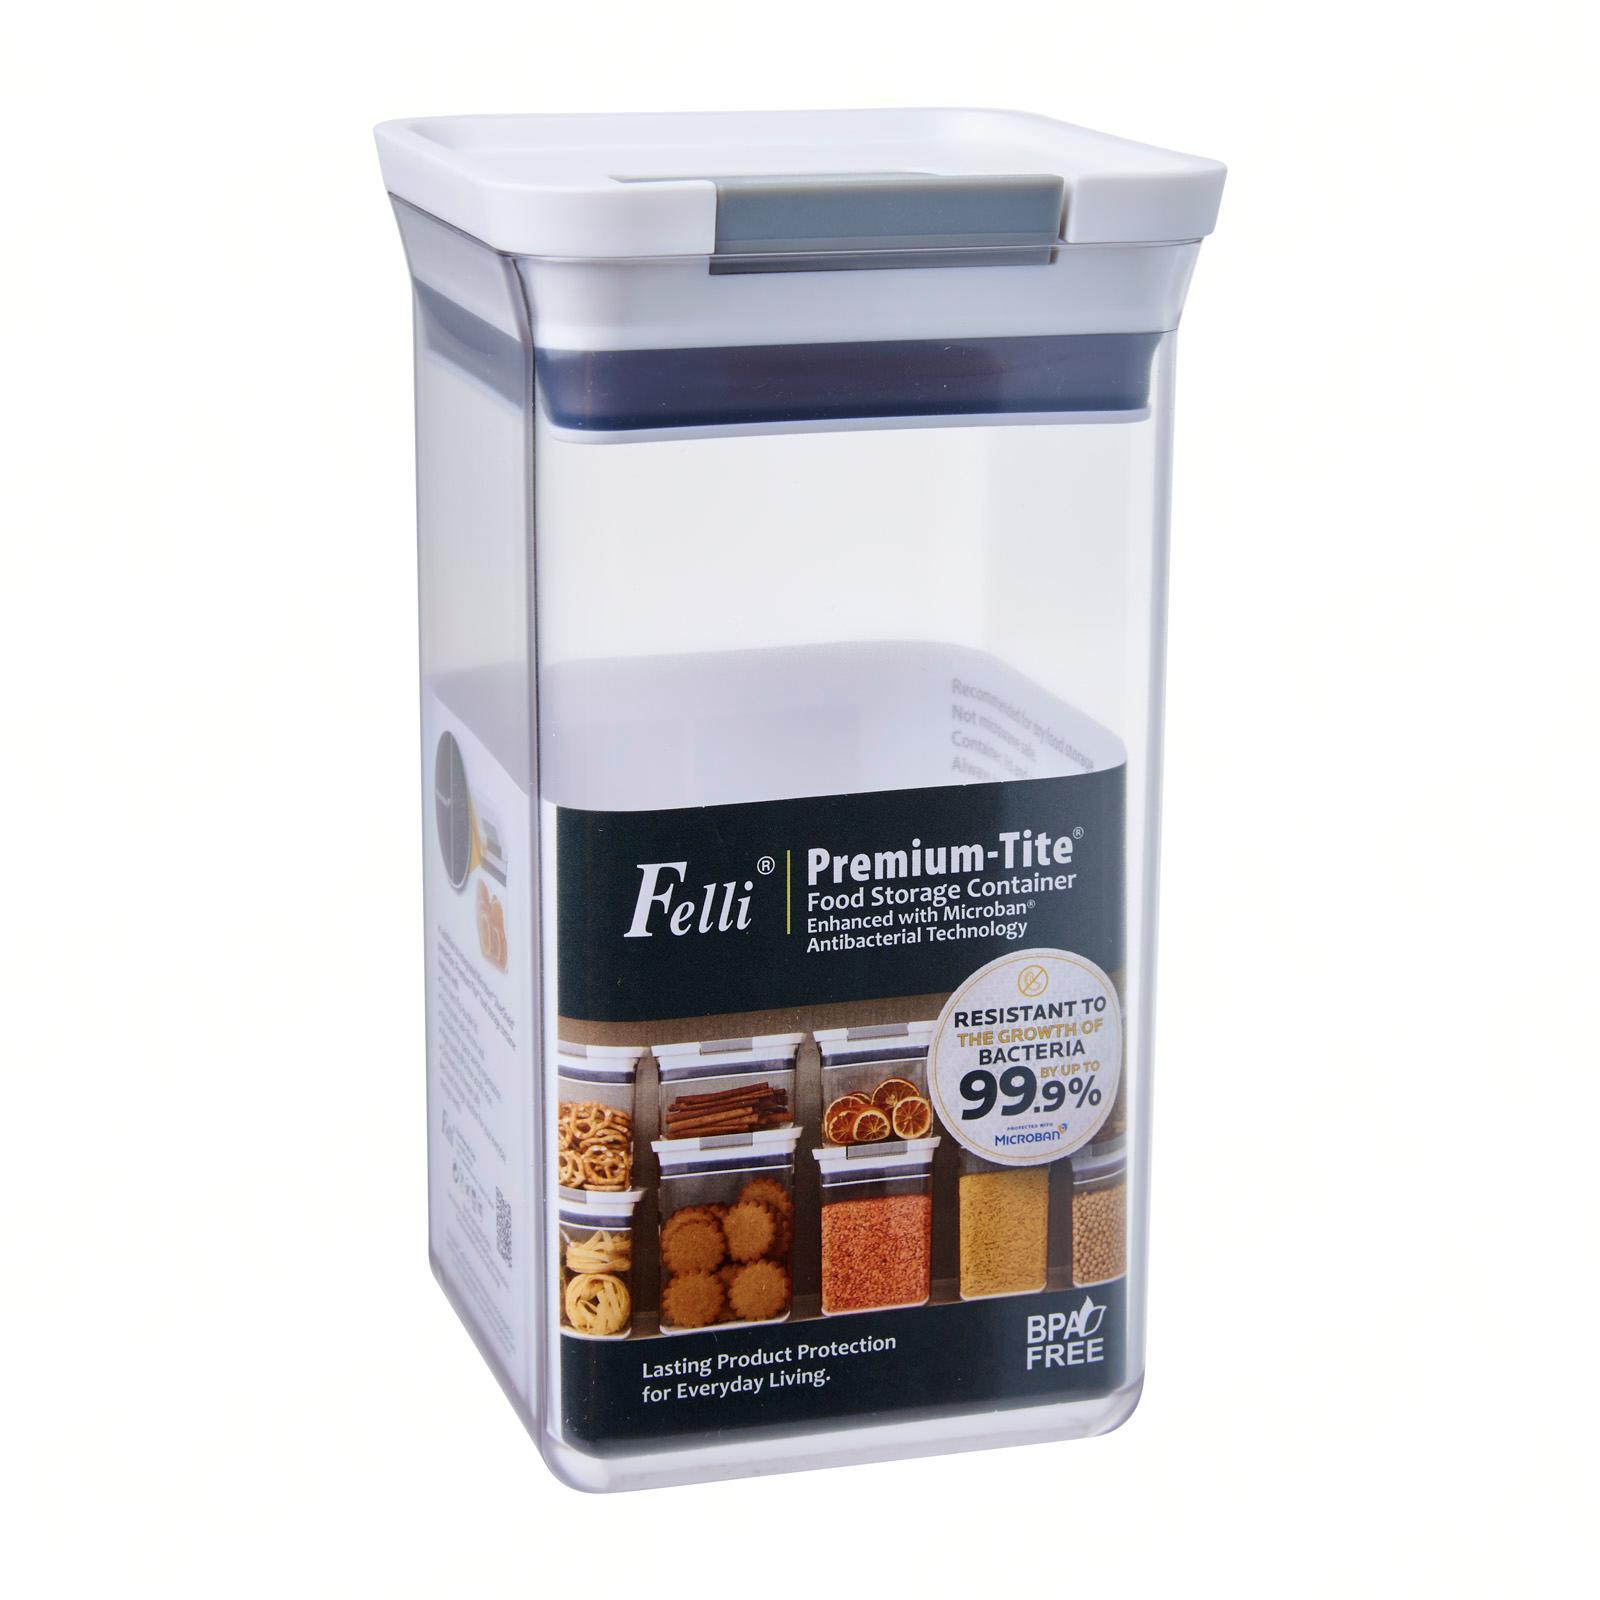 Felli Premium Tite Food Storage Container Enhanced with Microban Antibacterial Technology 1.4L